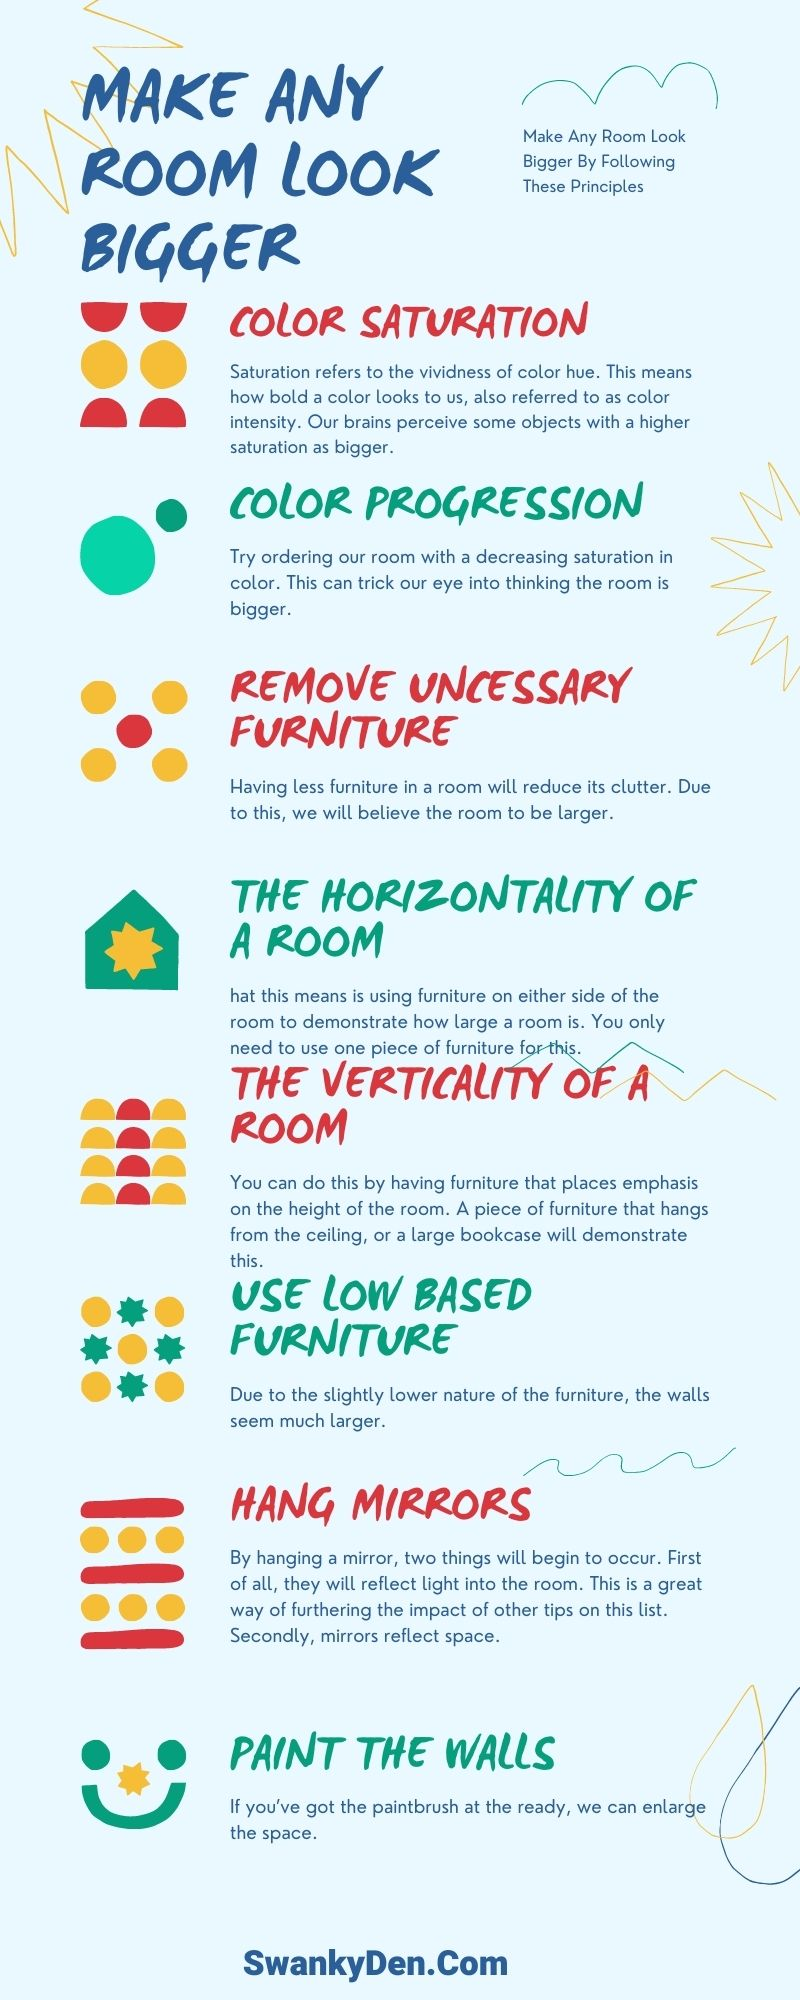 how to make any room look bigger infographic